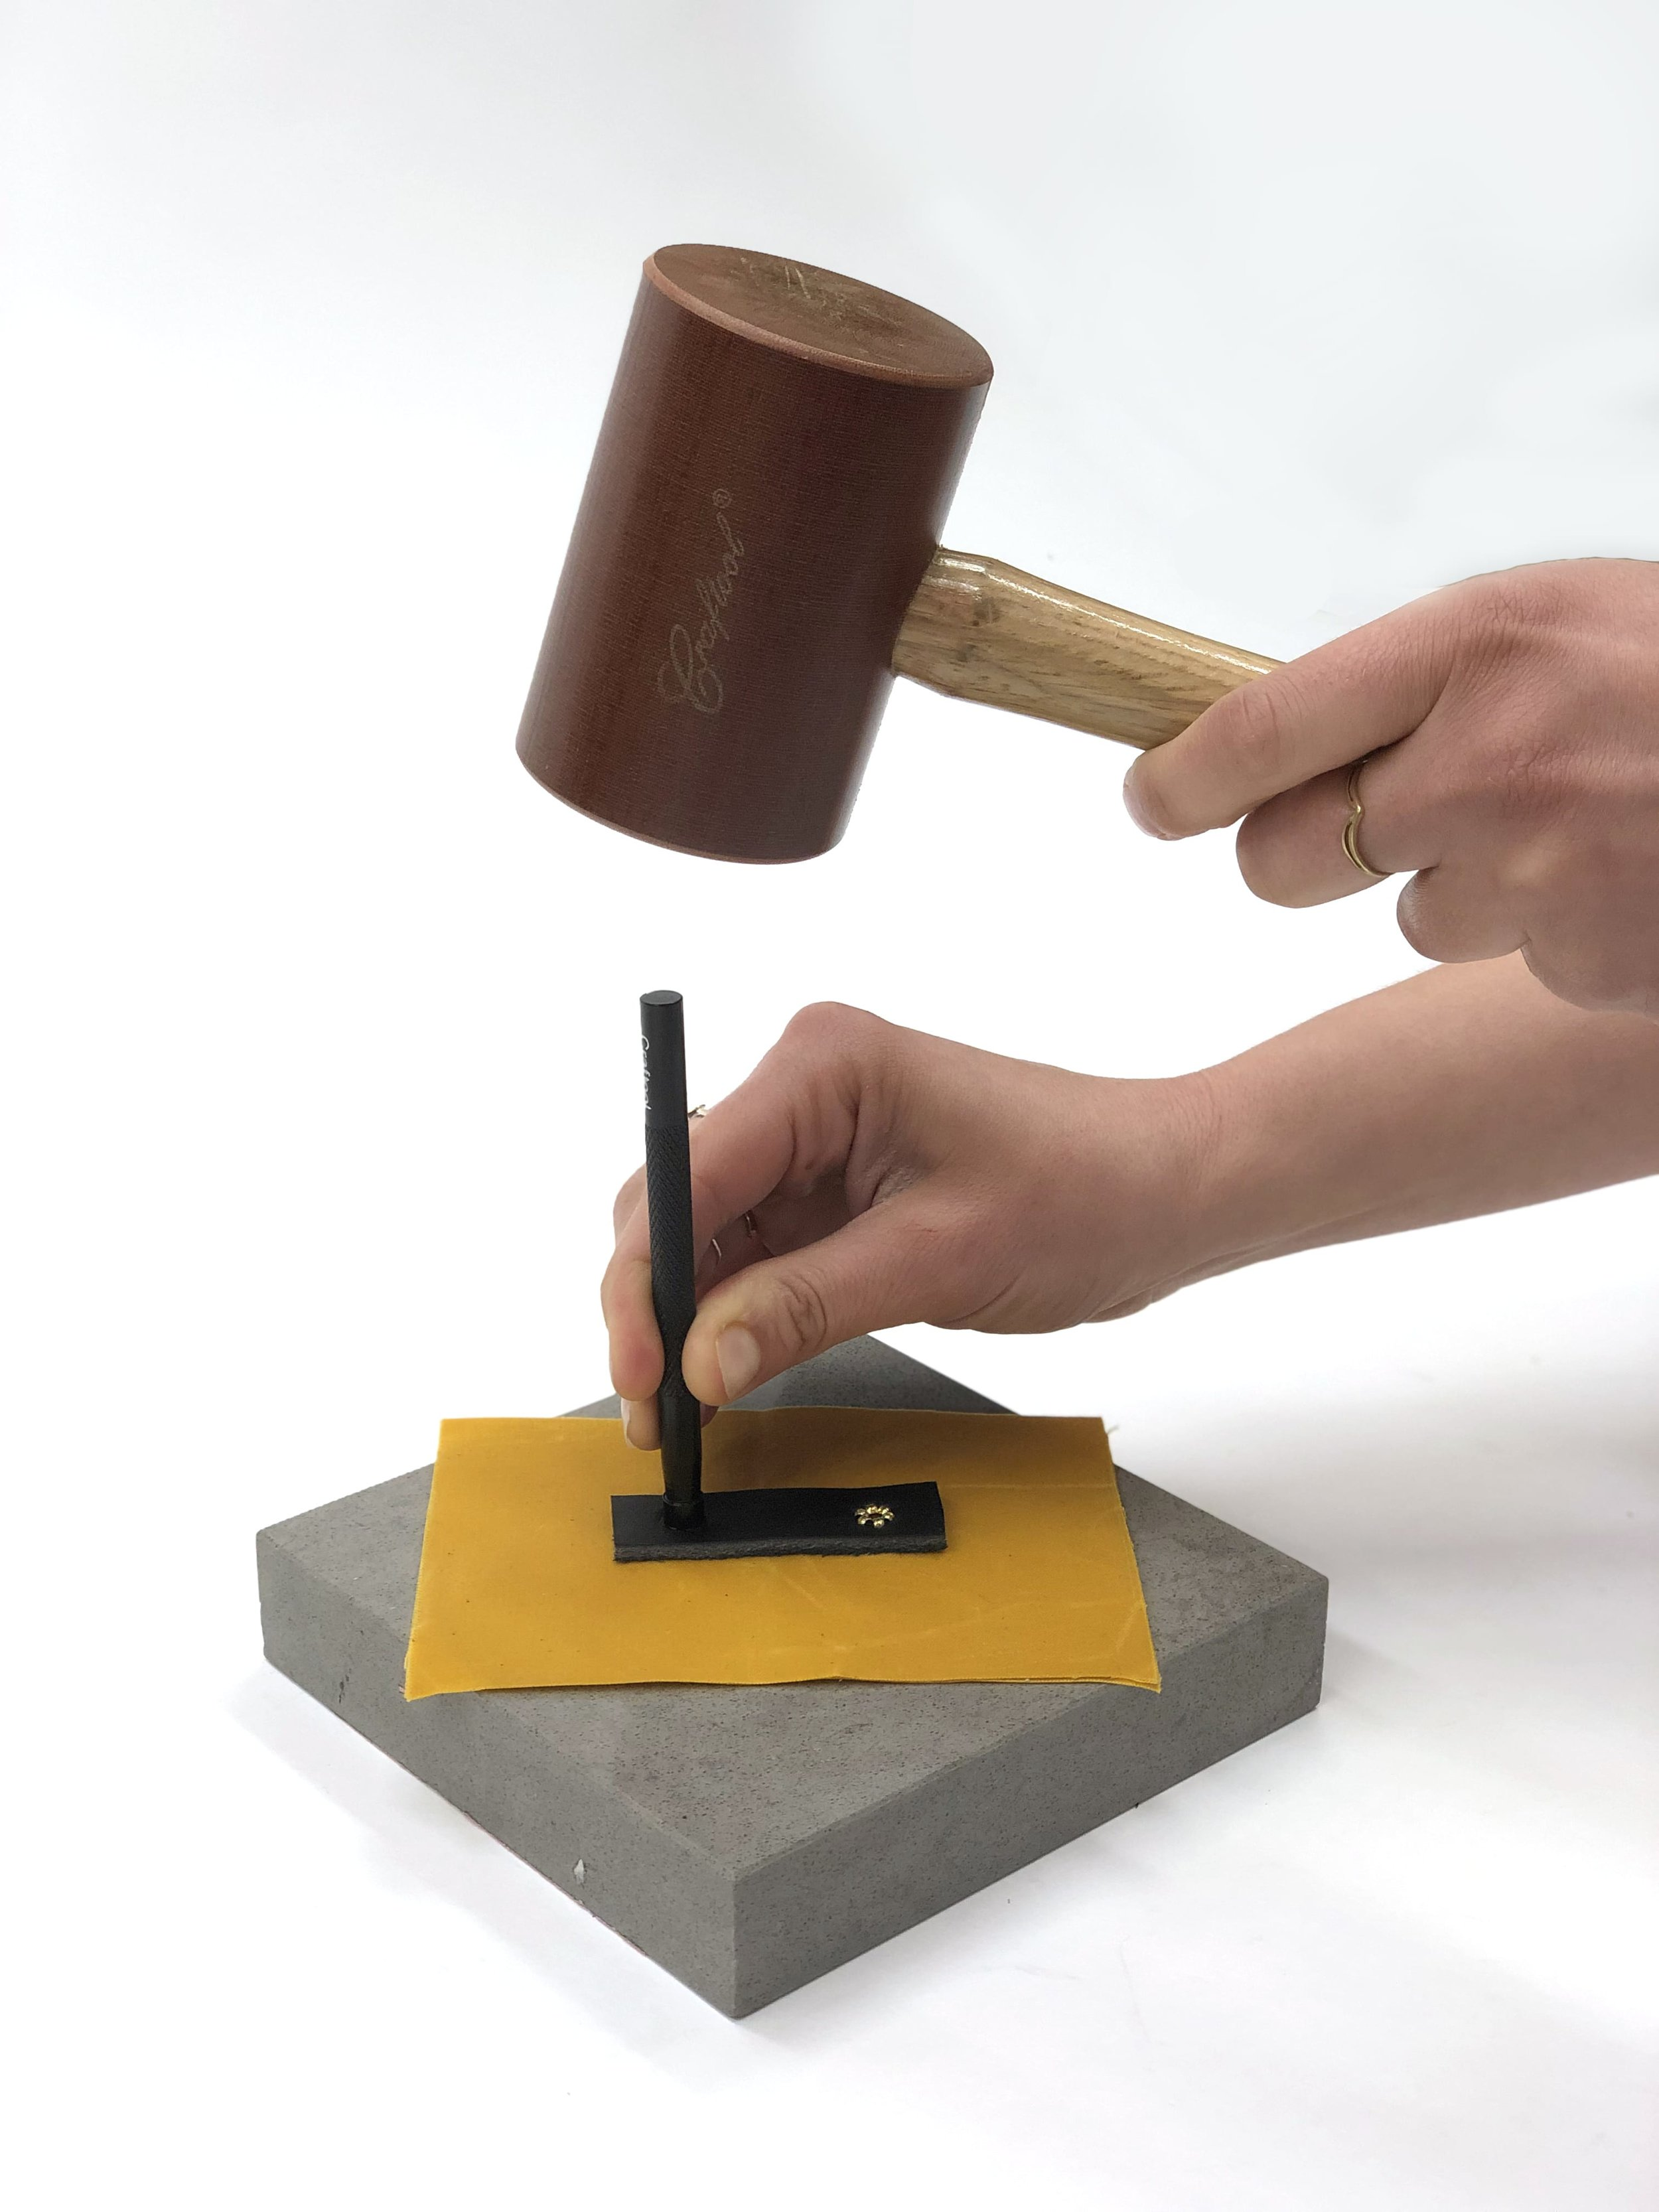 This is how a tubular rivet is set: with a tubular rivet peening tool and a mallet on a hard surface